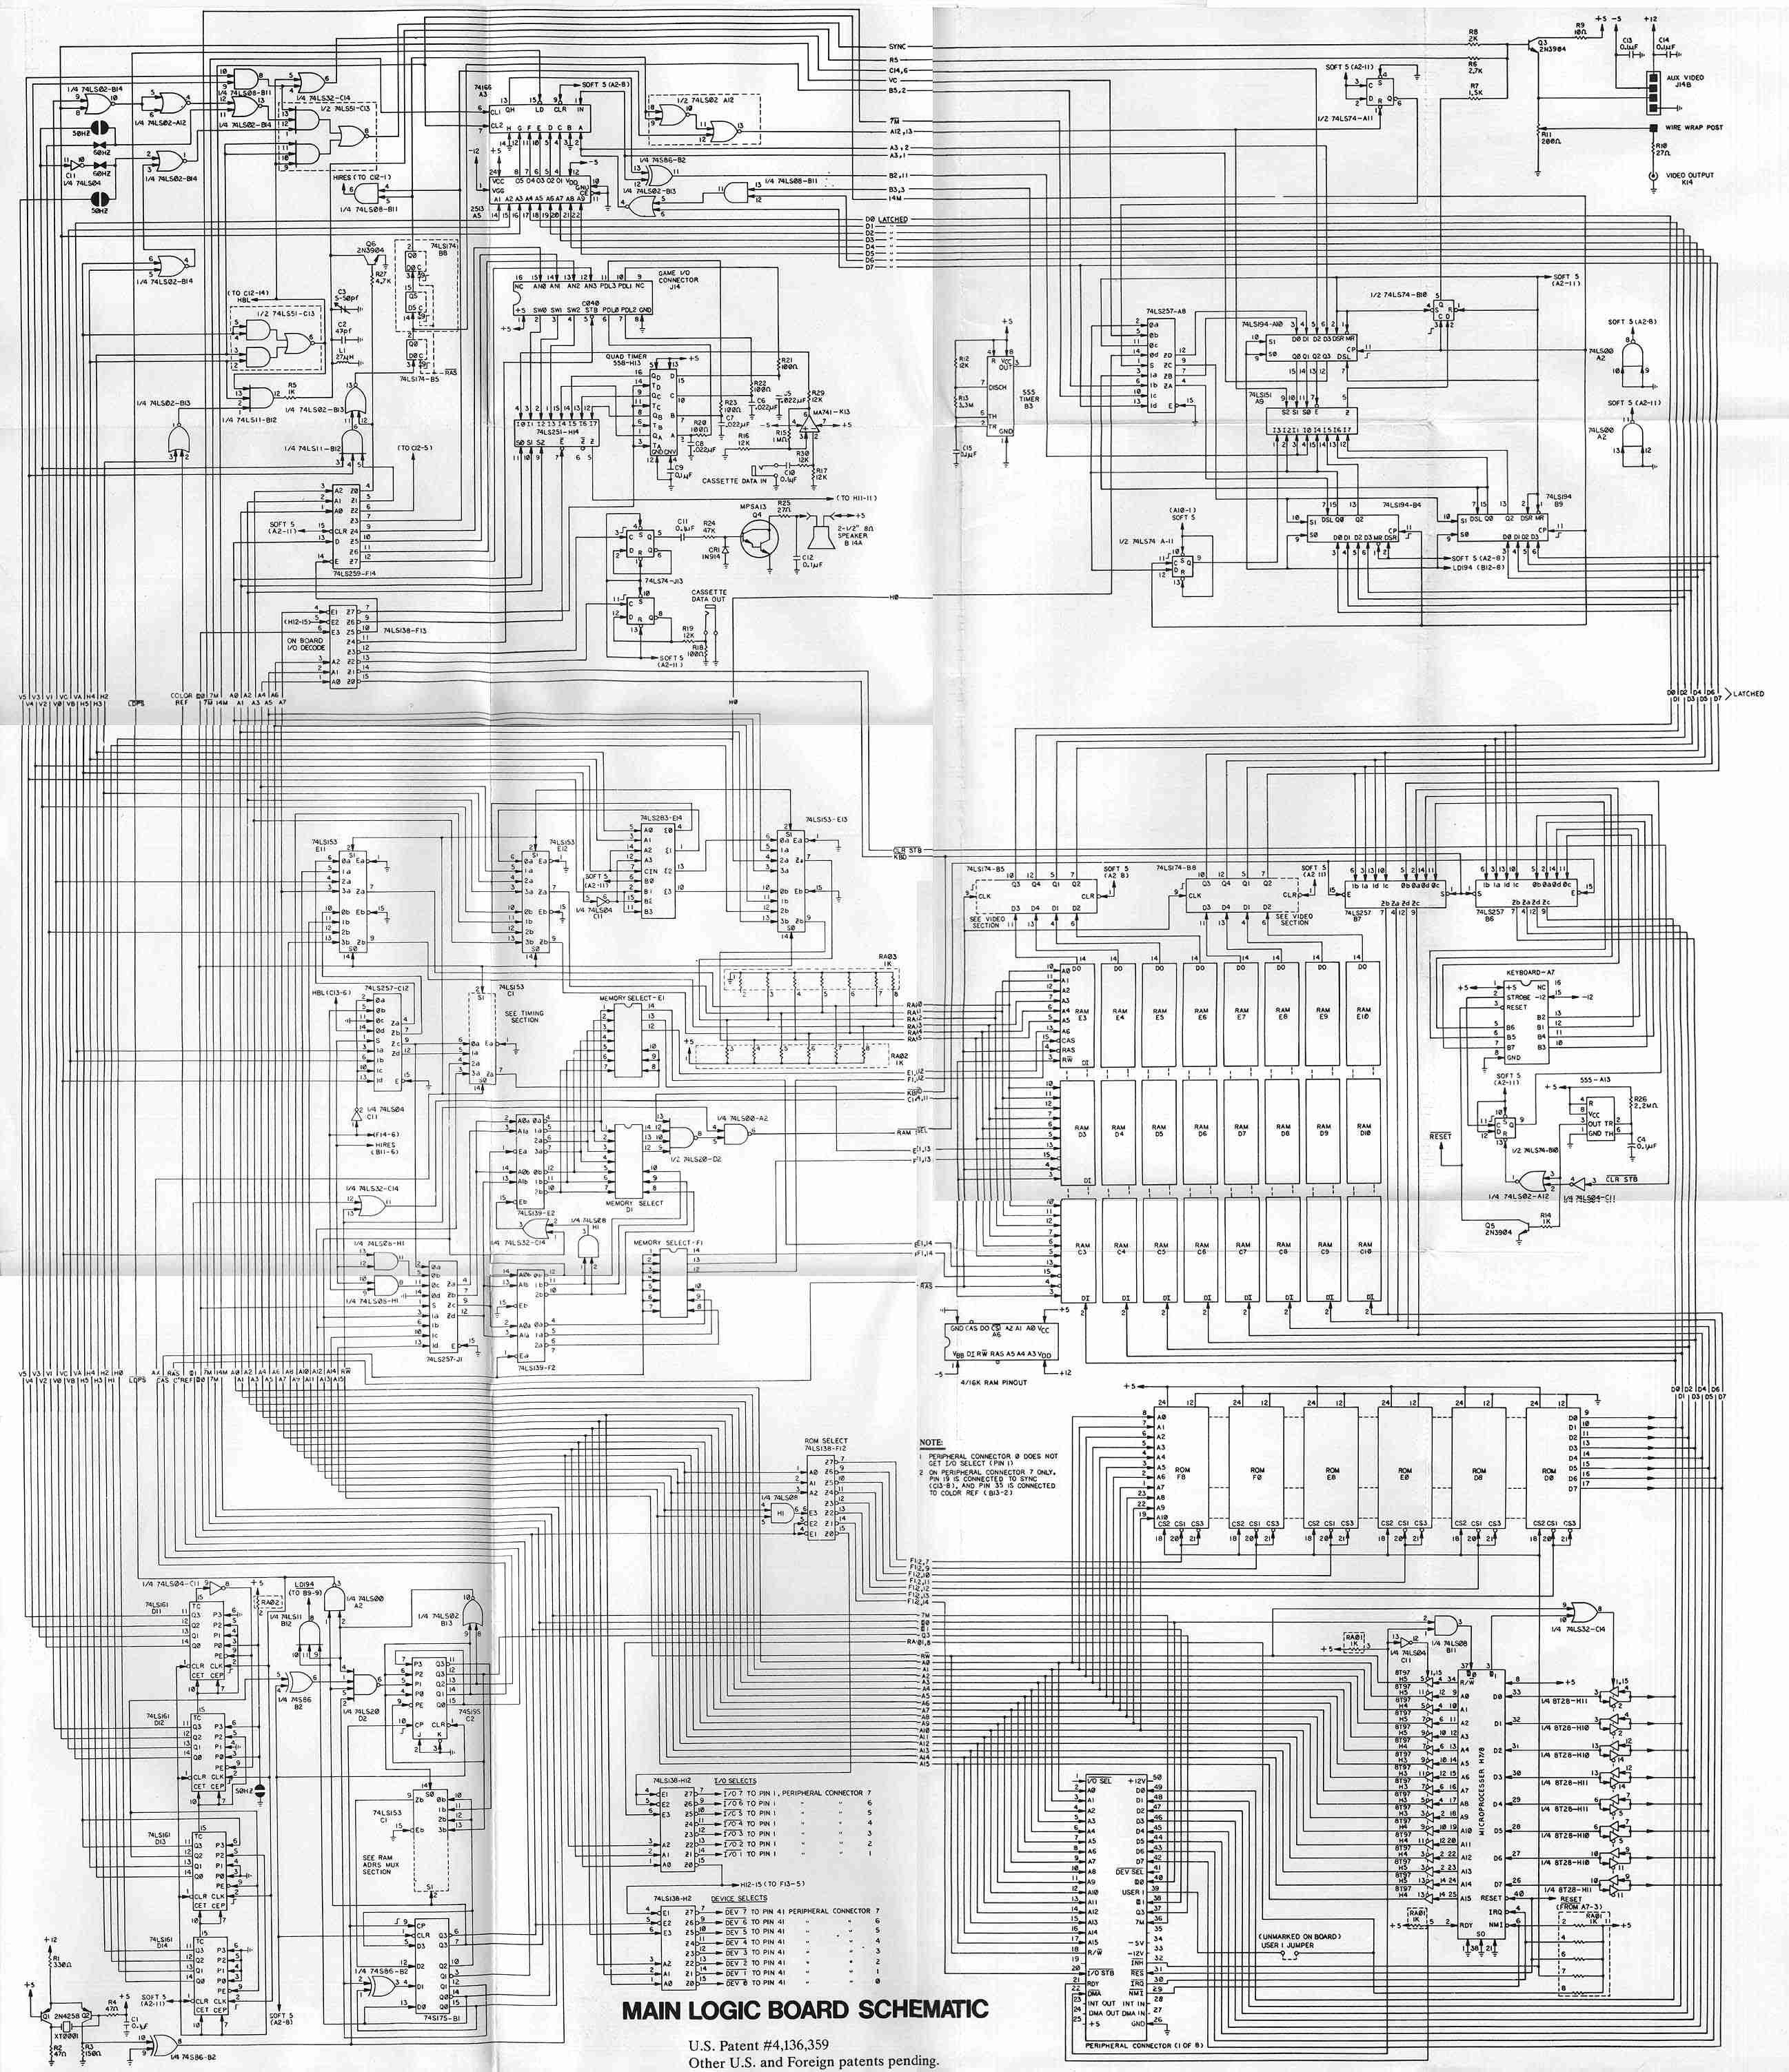 small resolution of apple 2 main logic board electronic circuit schematic